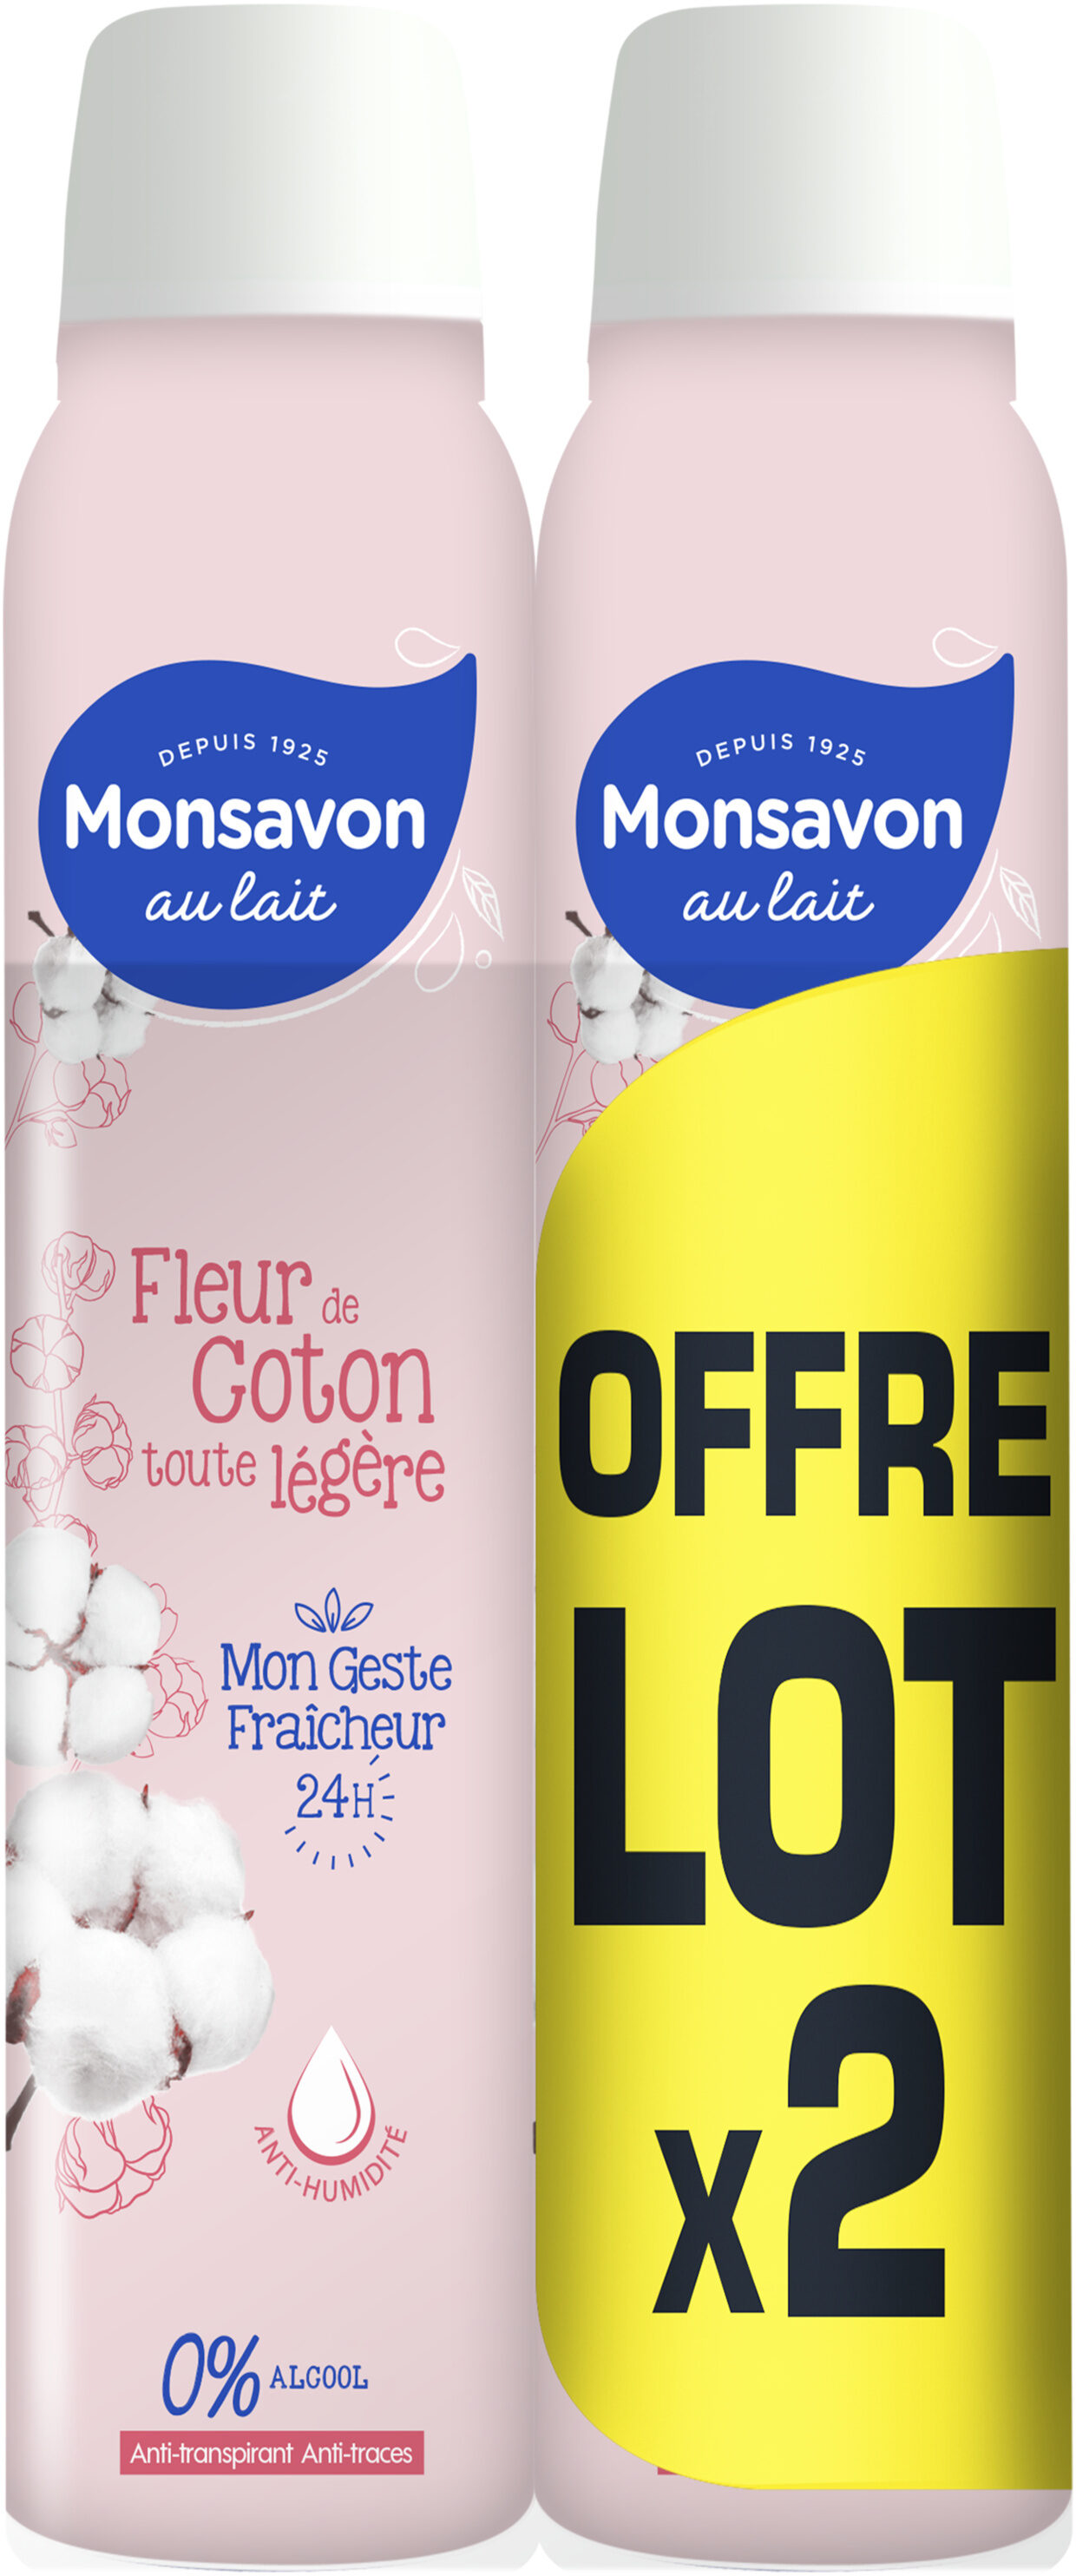 Monsavon Déodorant Femme Spray Anti Transpirant Lait & Coton 2x200ml - Product - fr